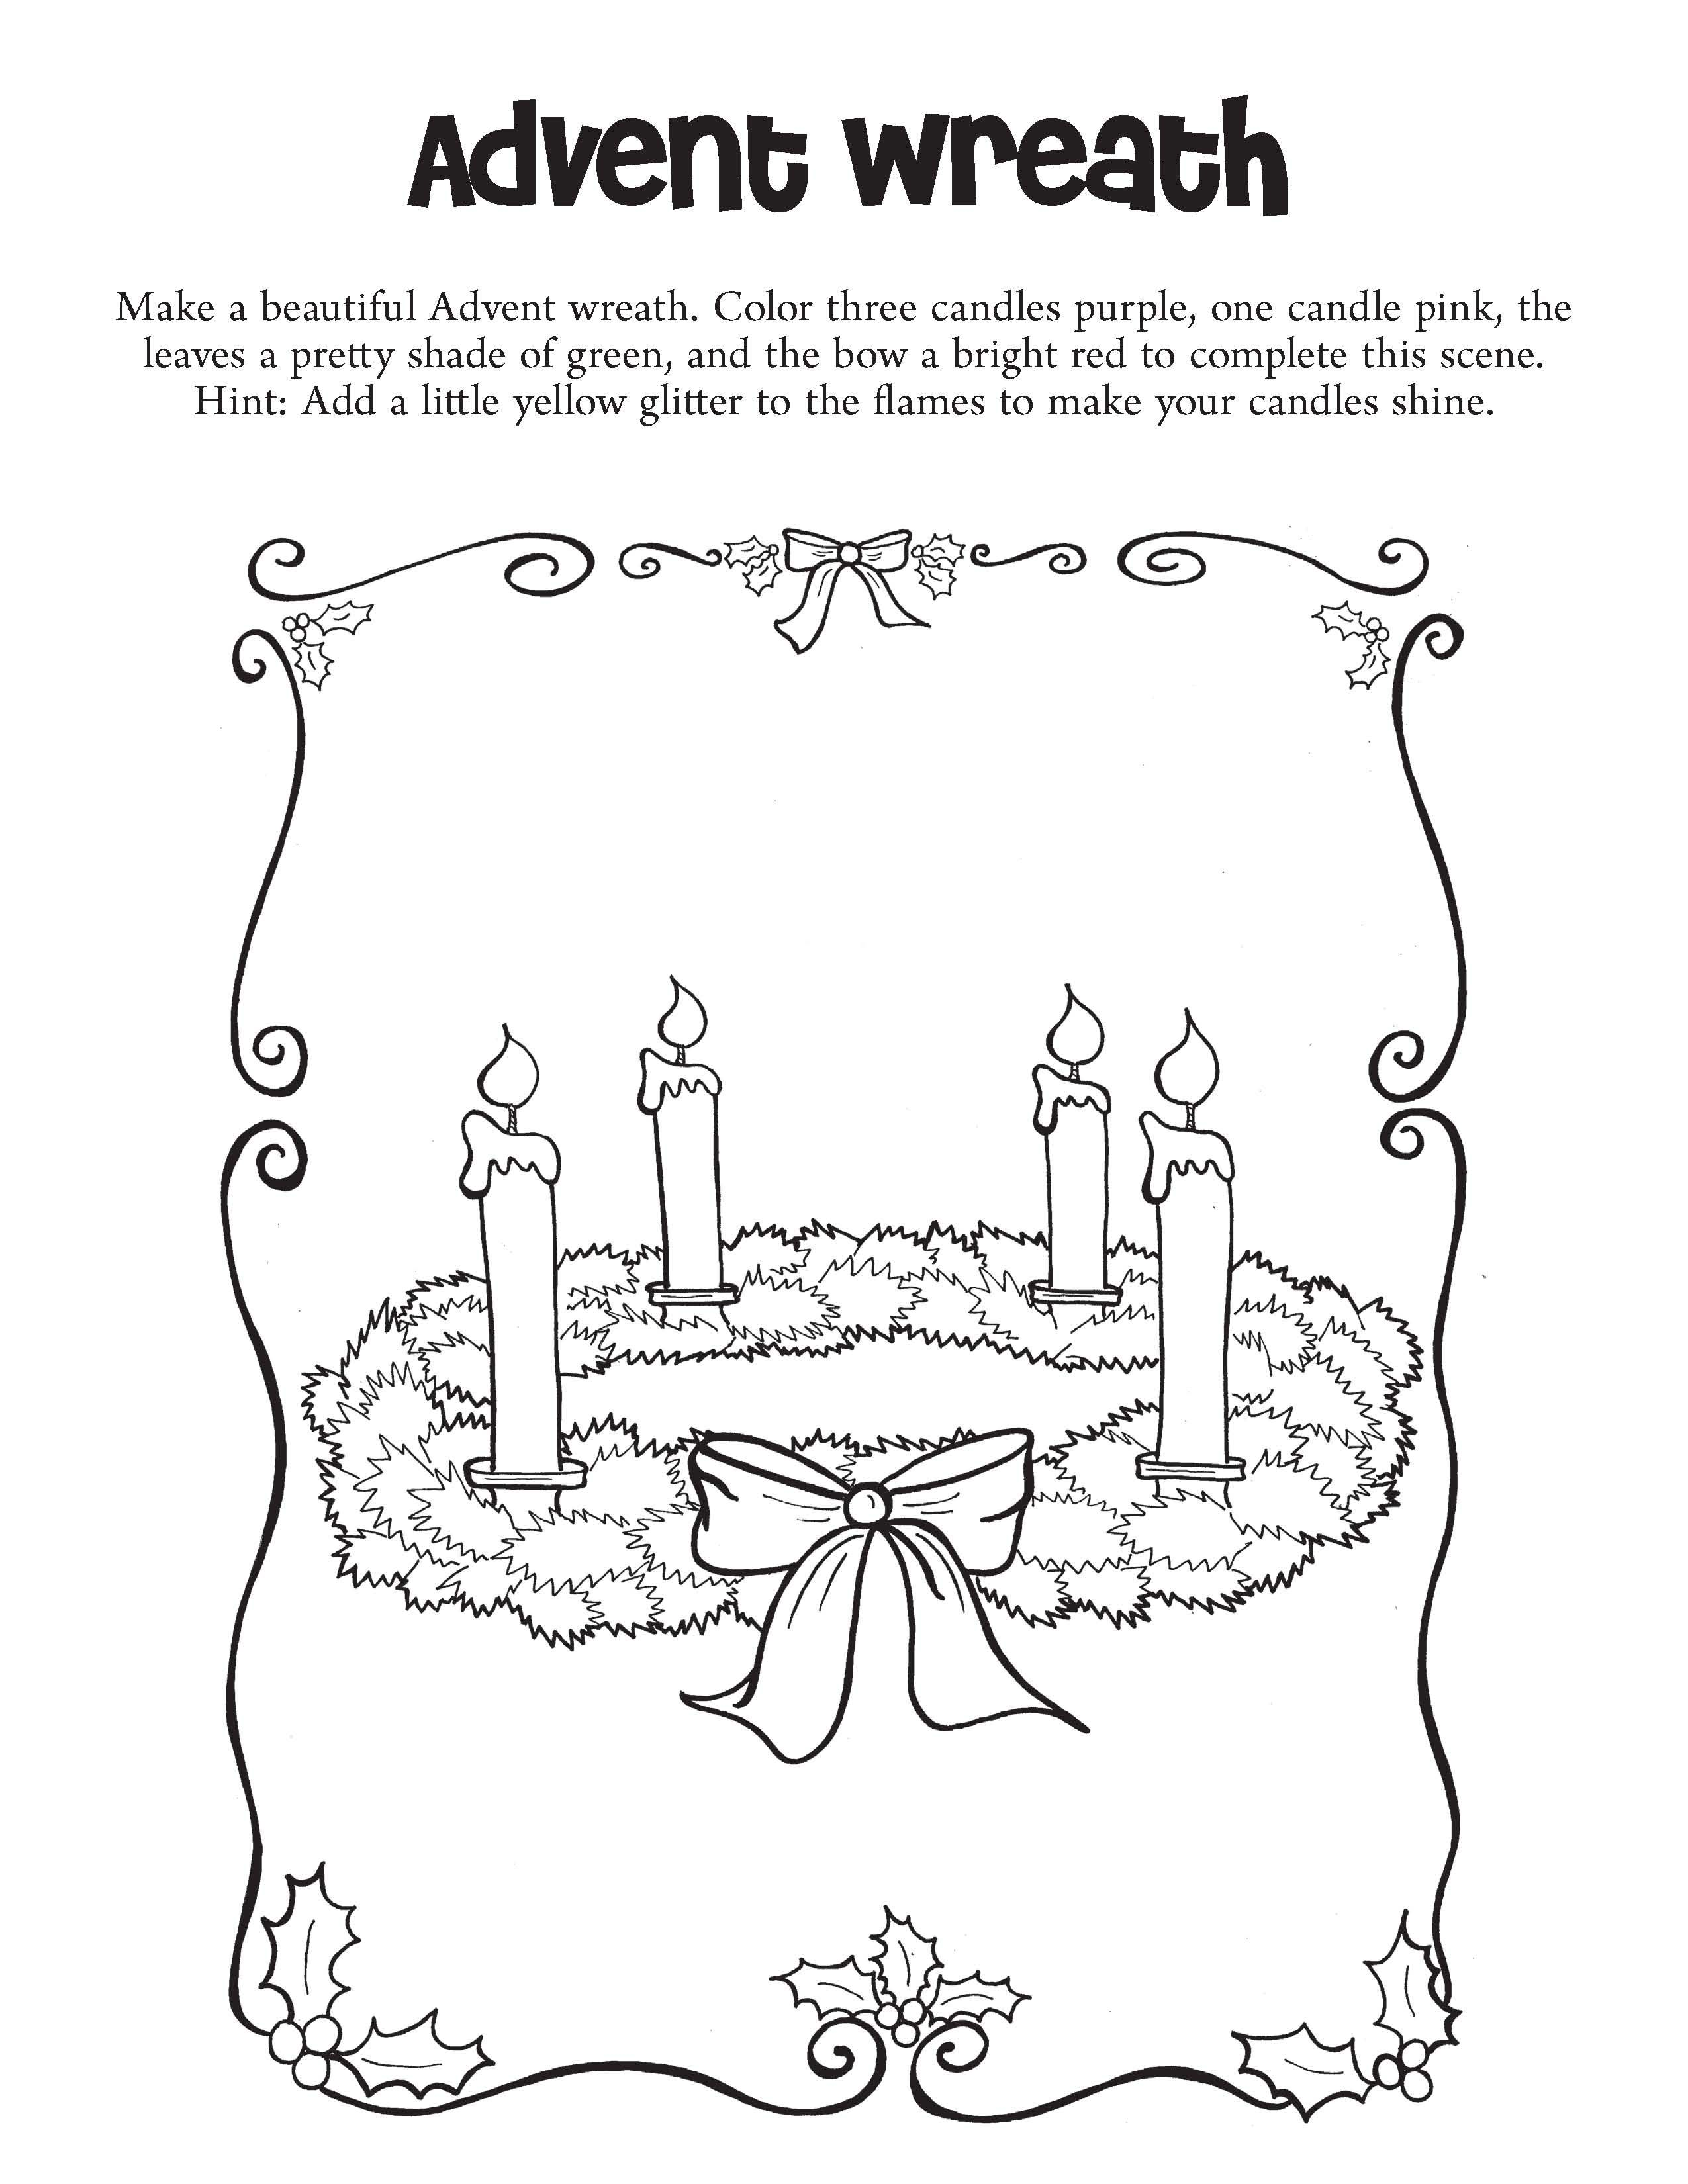 Make a beautiful Advent wreath